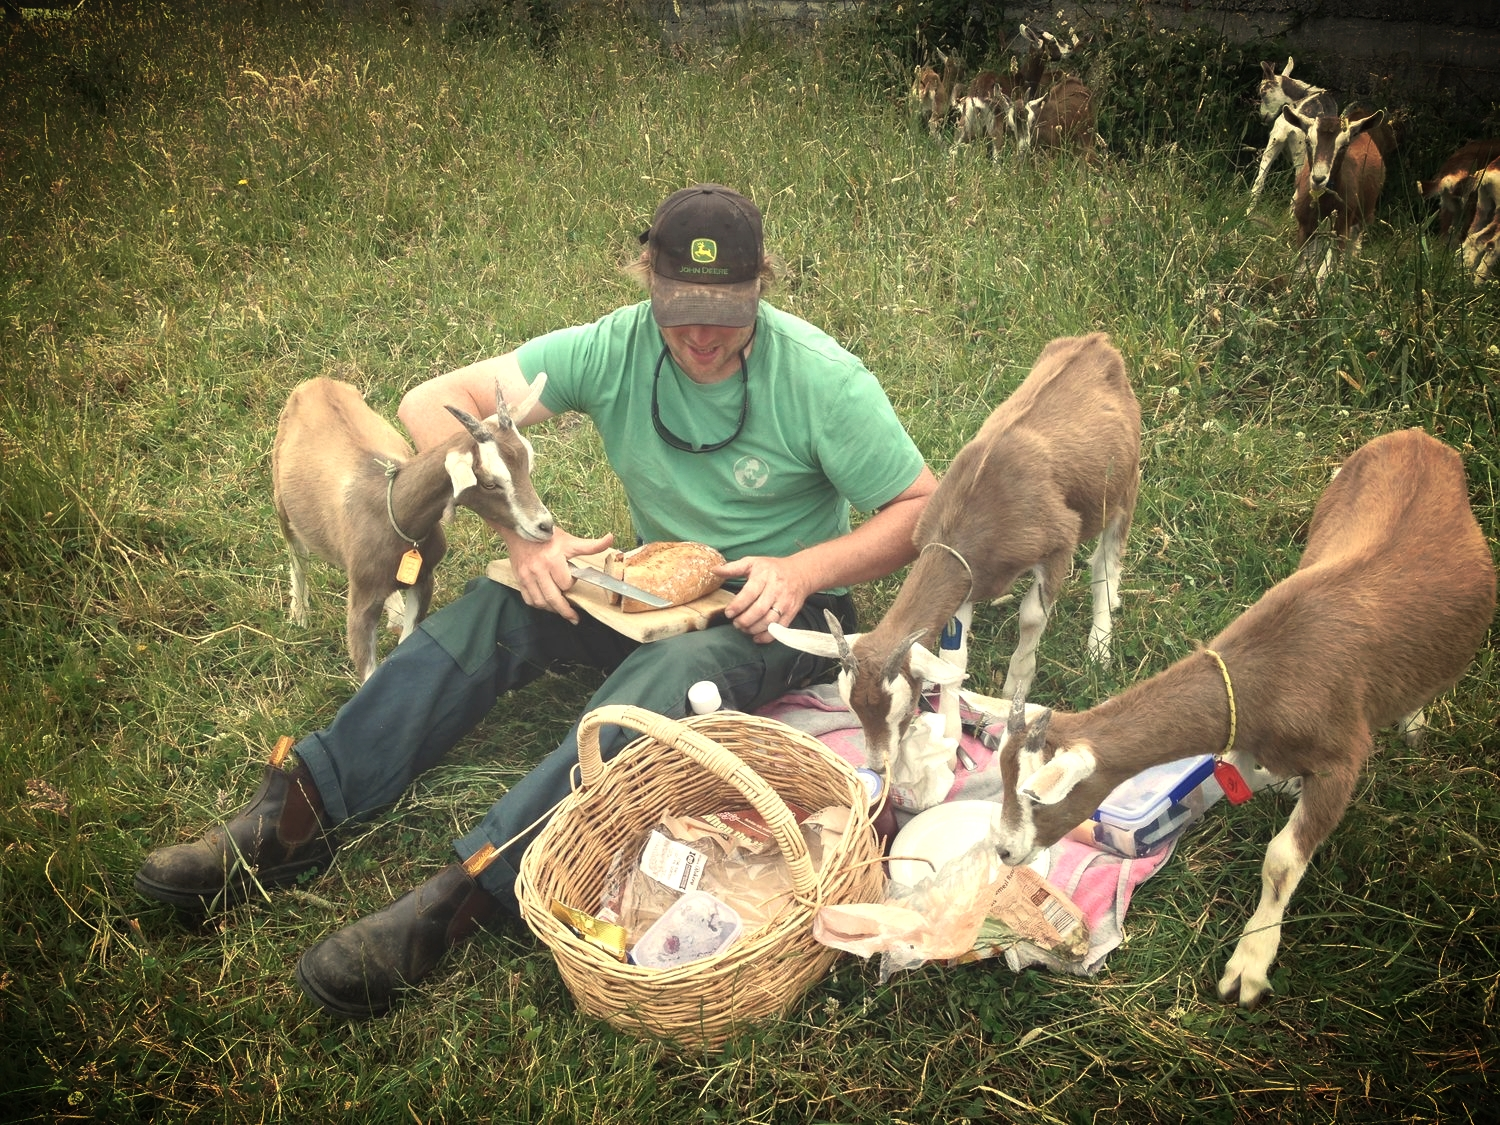 Picnic with the goats